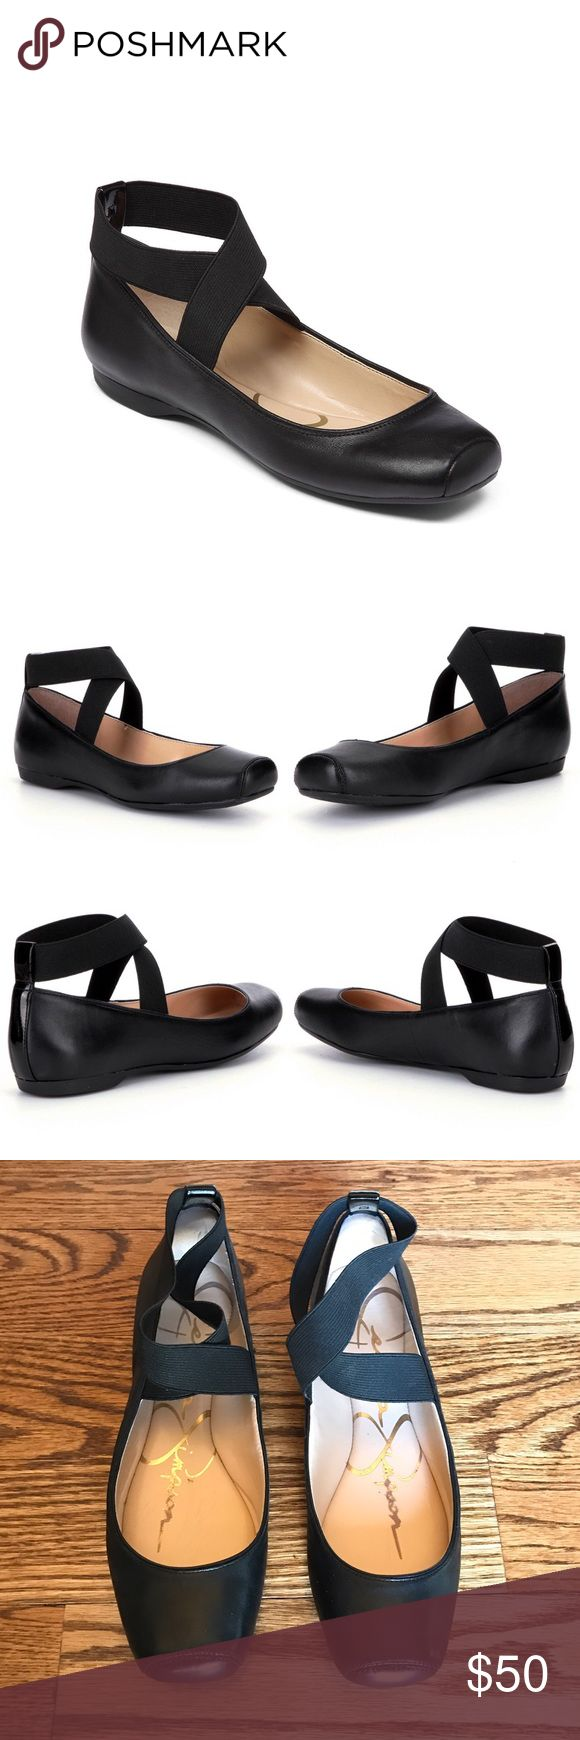 Black Leather Ballet Flats Great condition! Barely worn. Jessica Simpson Mandalaye Leather Ballet Flats. These beautiful flats feature a square toe and elastic ankle strap for a pointe style. Jessica Simpson Shoes Flats & Loafers